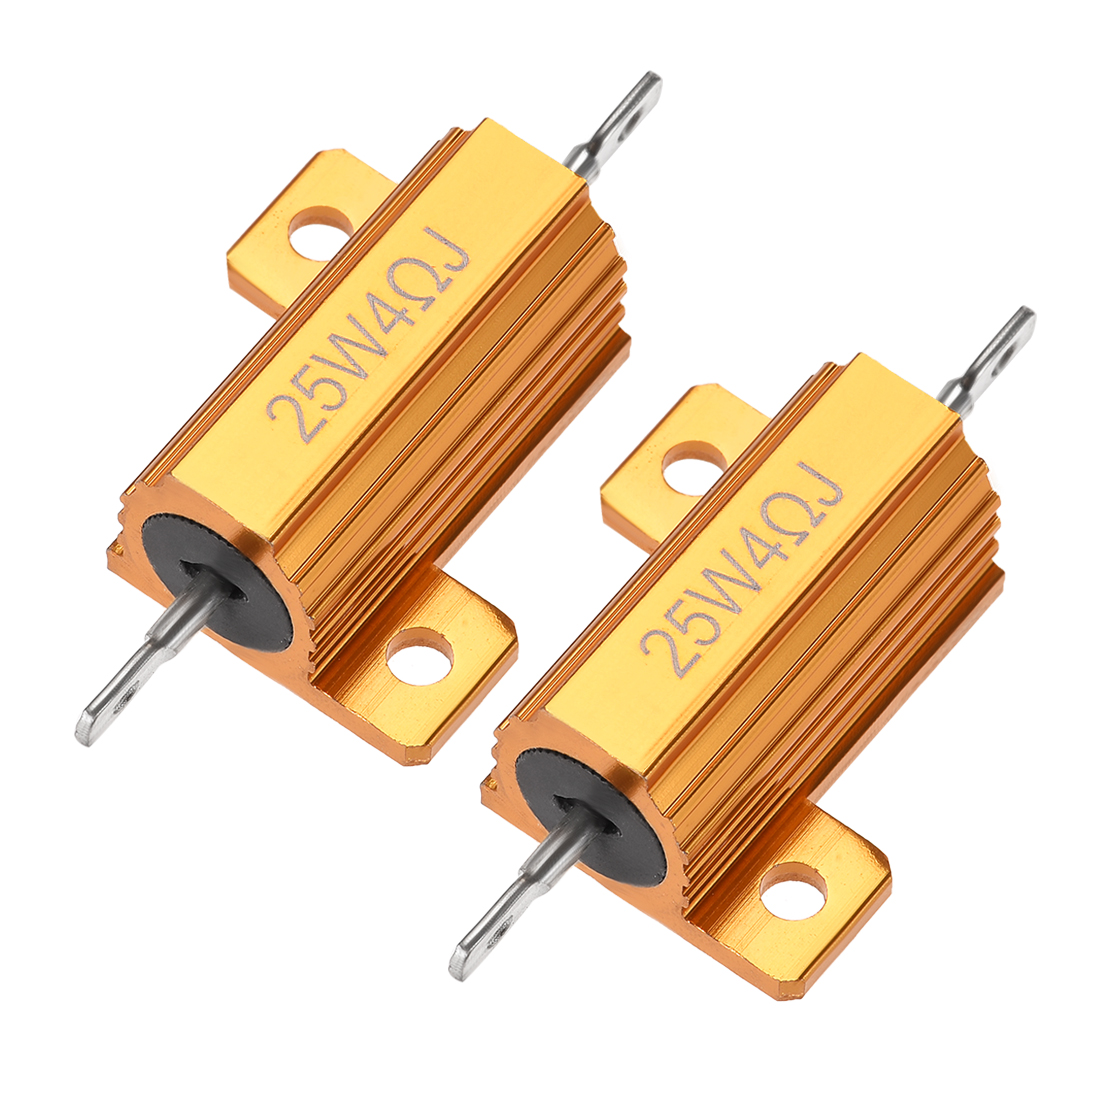 25Watt 4 Ohm 5% Aluminum Housing Resistor Wirewound Resistor Gold Tone 2 Pcs